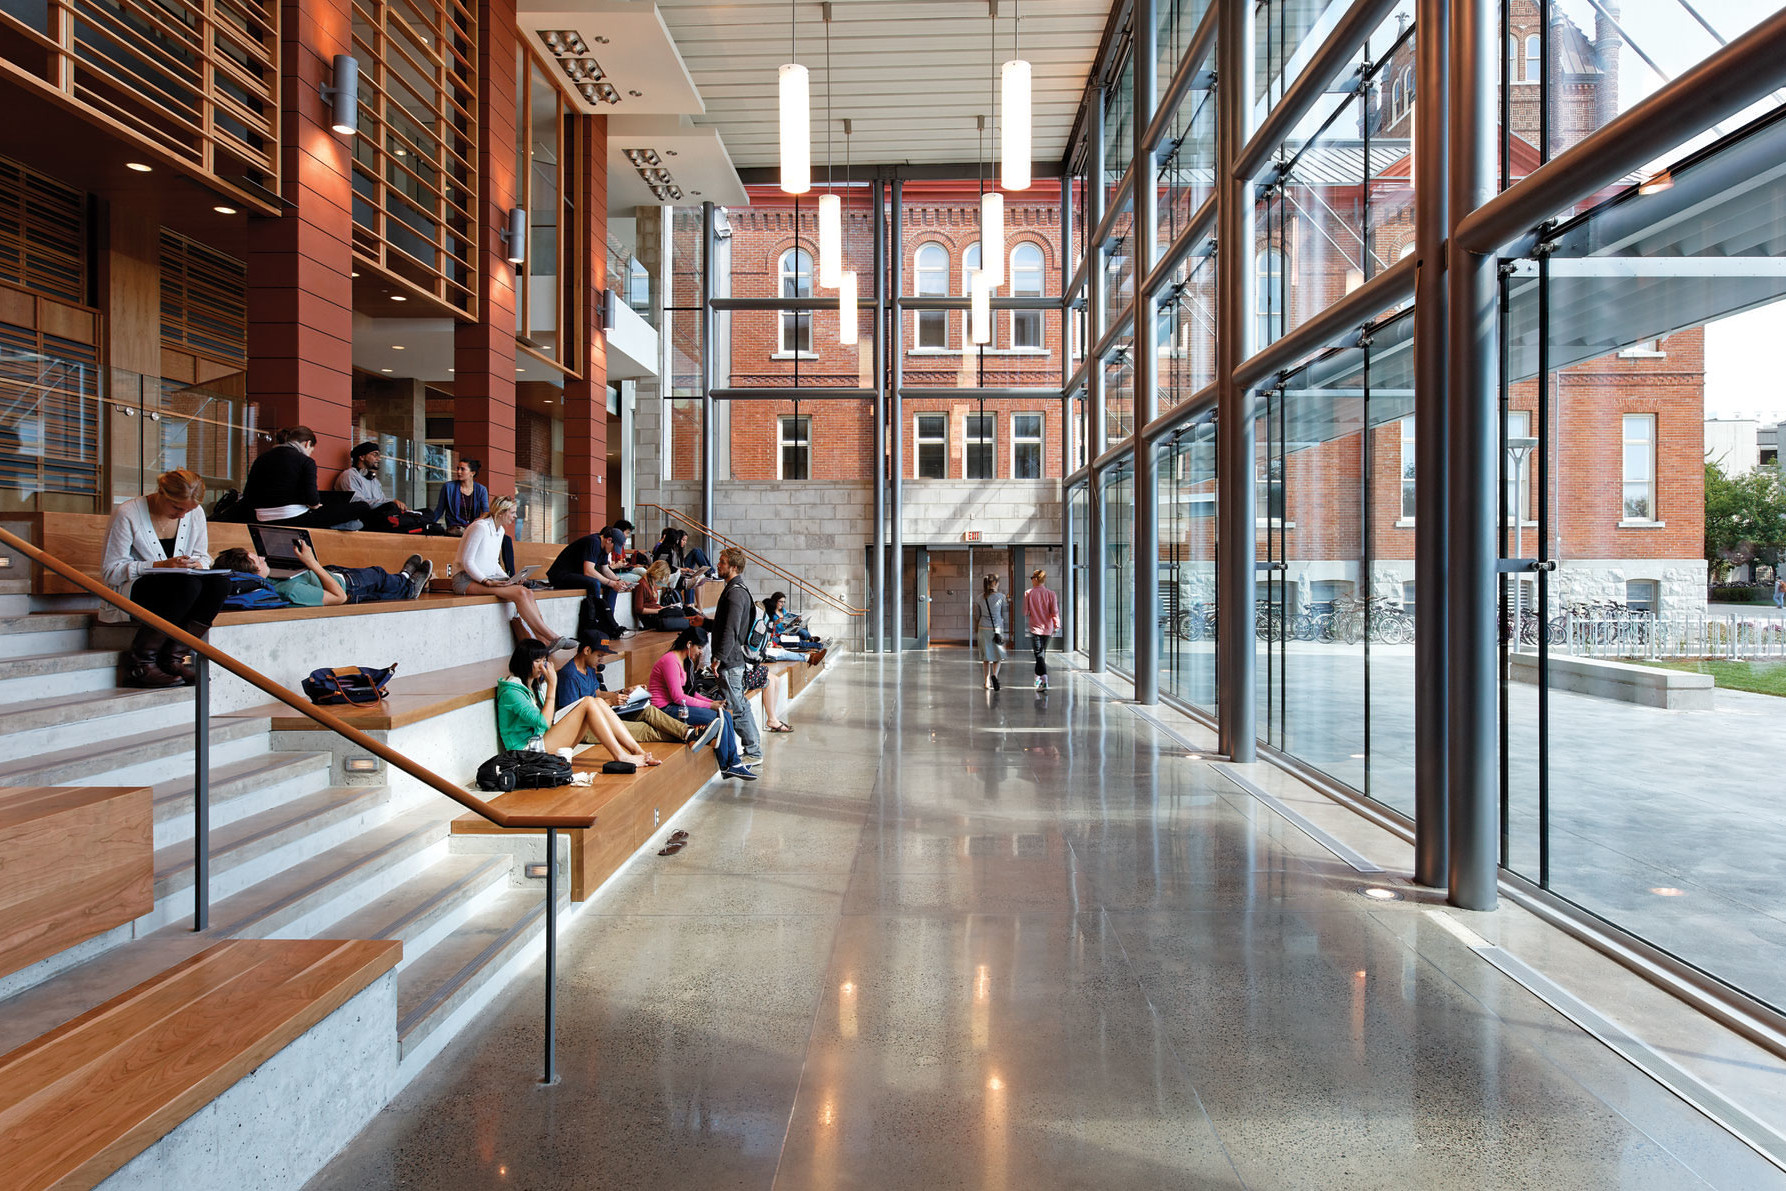 Students lounging on large wooden steps of Learning Commons looking through glass façade to original red brick Victoria School House